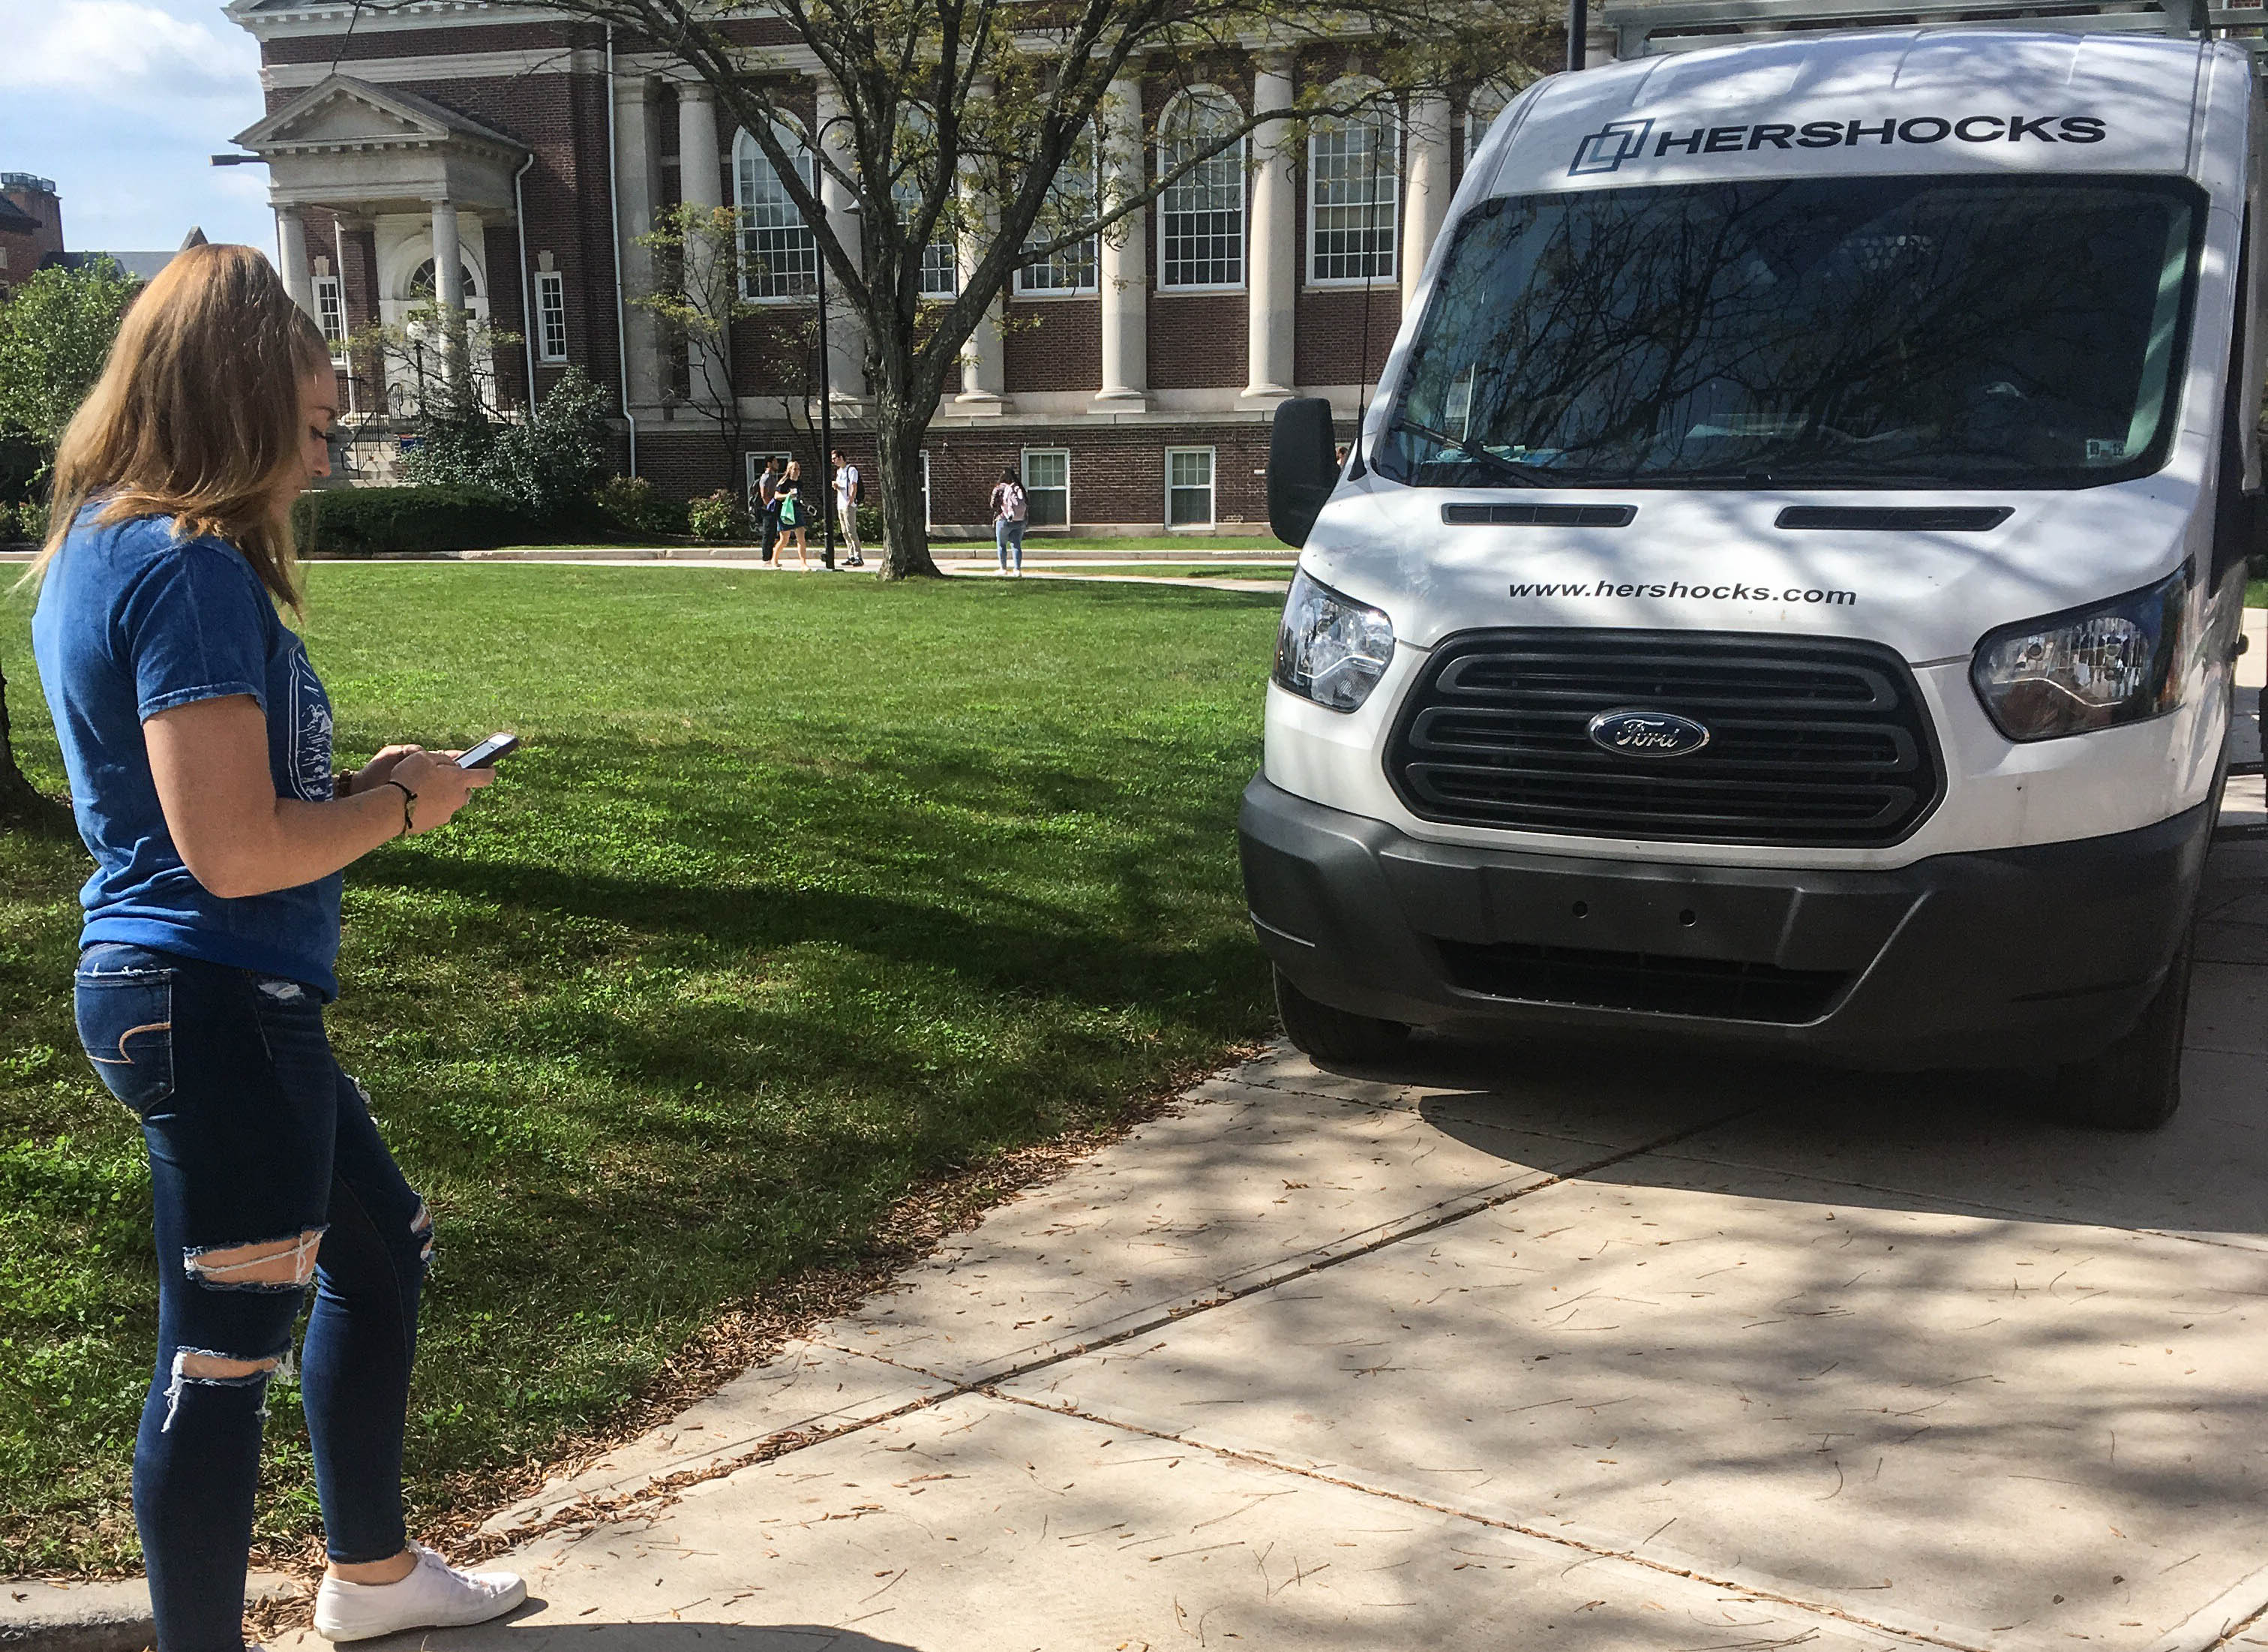 Texting and walking is a prevalent habit among Gettysburg College students (Photo Sam Hann/The Gettysburgian)